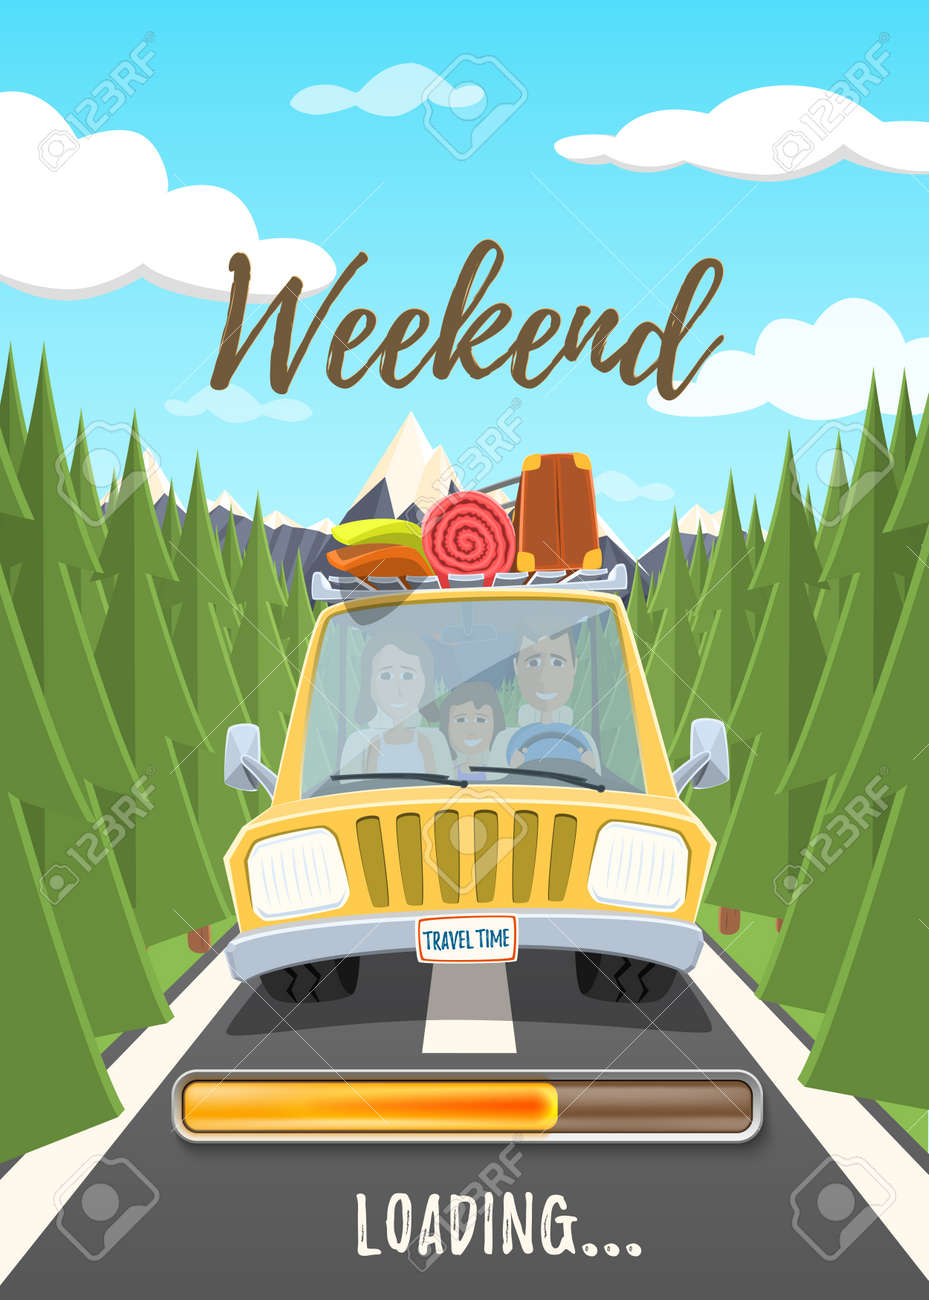 Weekend loading poster. Happy family traveling in the car. Vector illustration. - 81137102